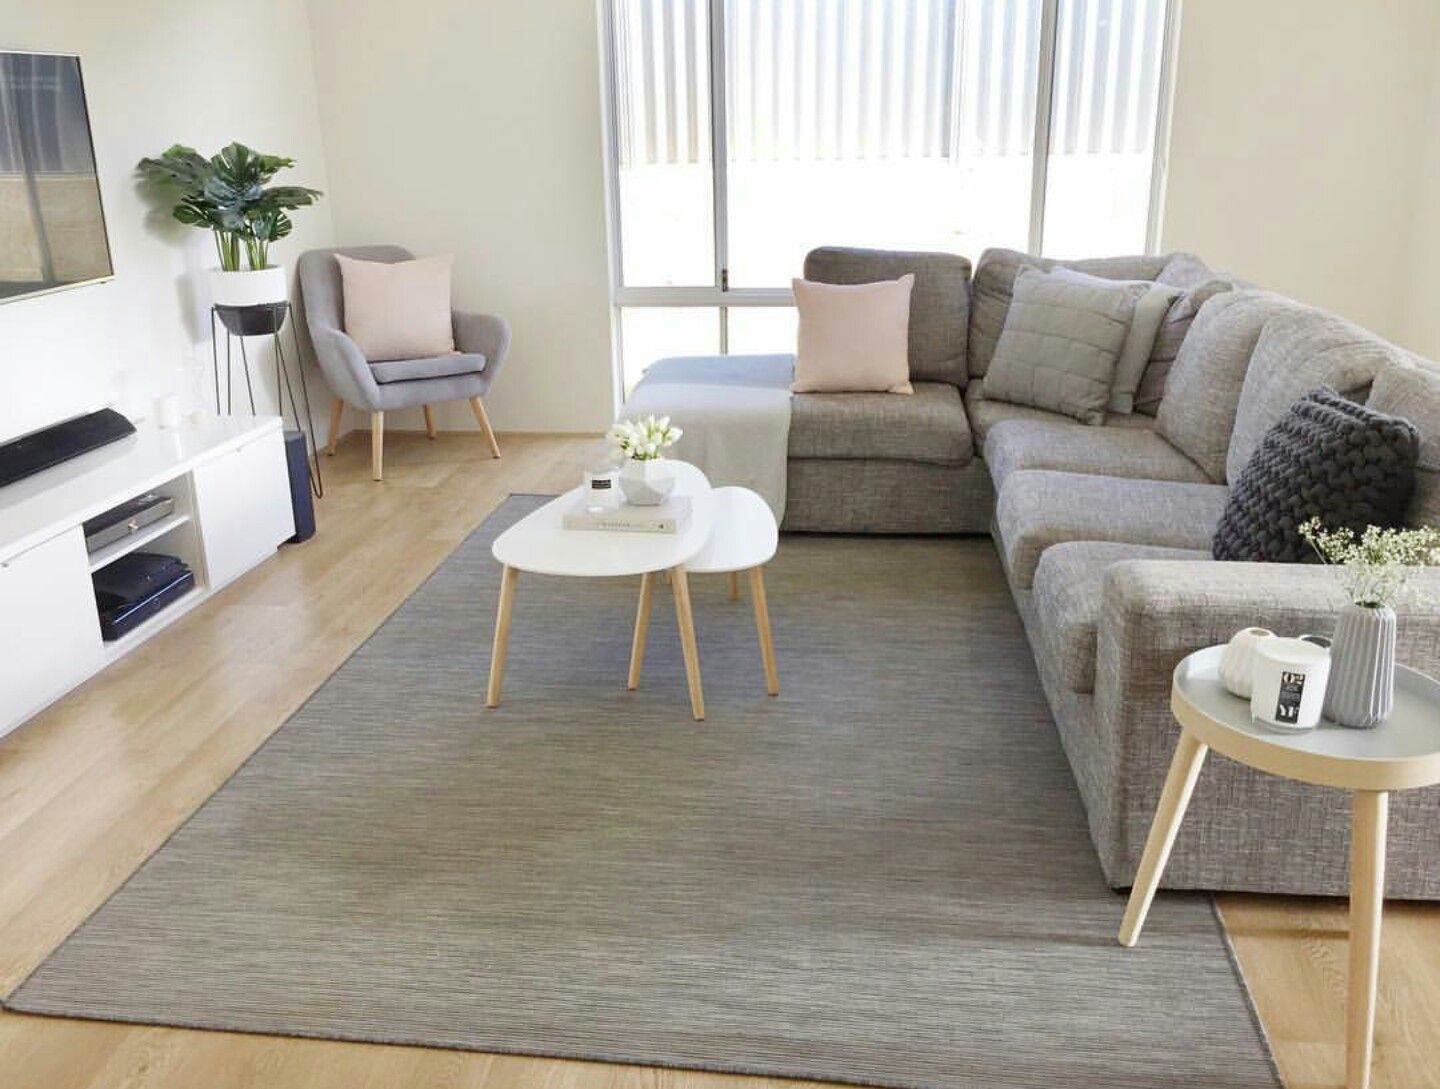 Sill n en l decoraci n hogar ikea living room simple for Sillones para apartamentos pequenos